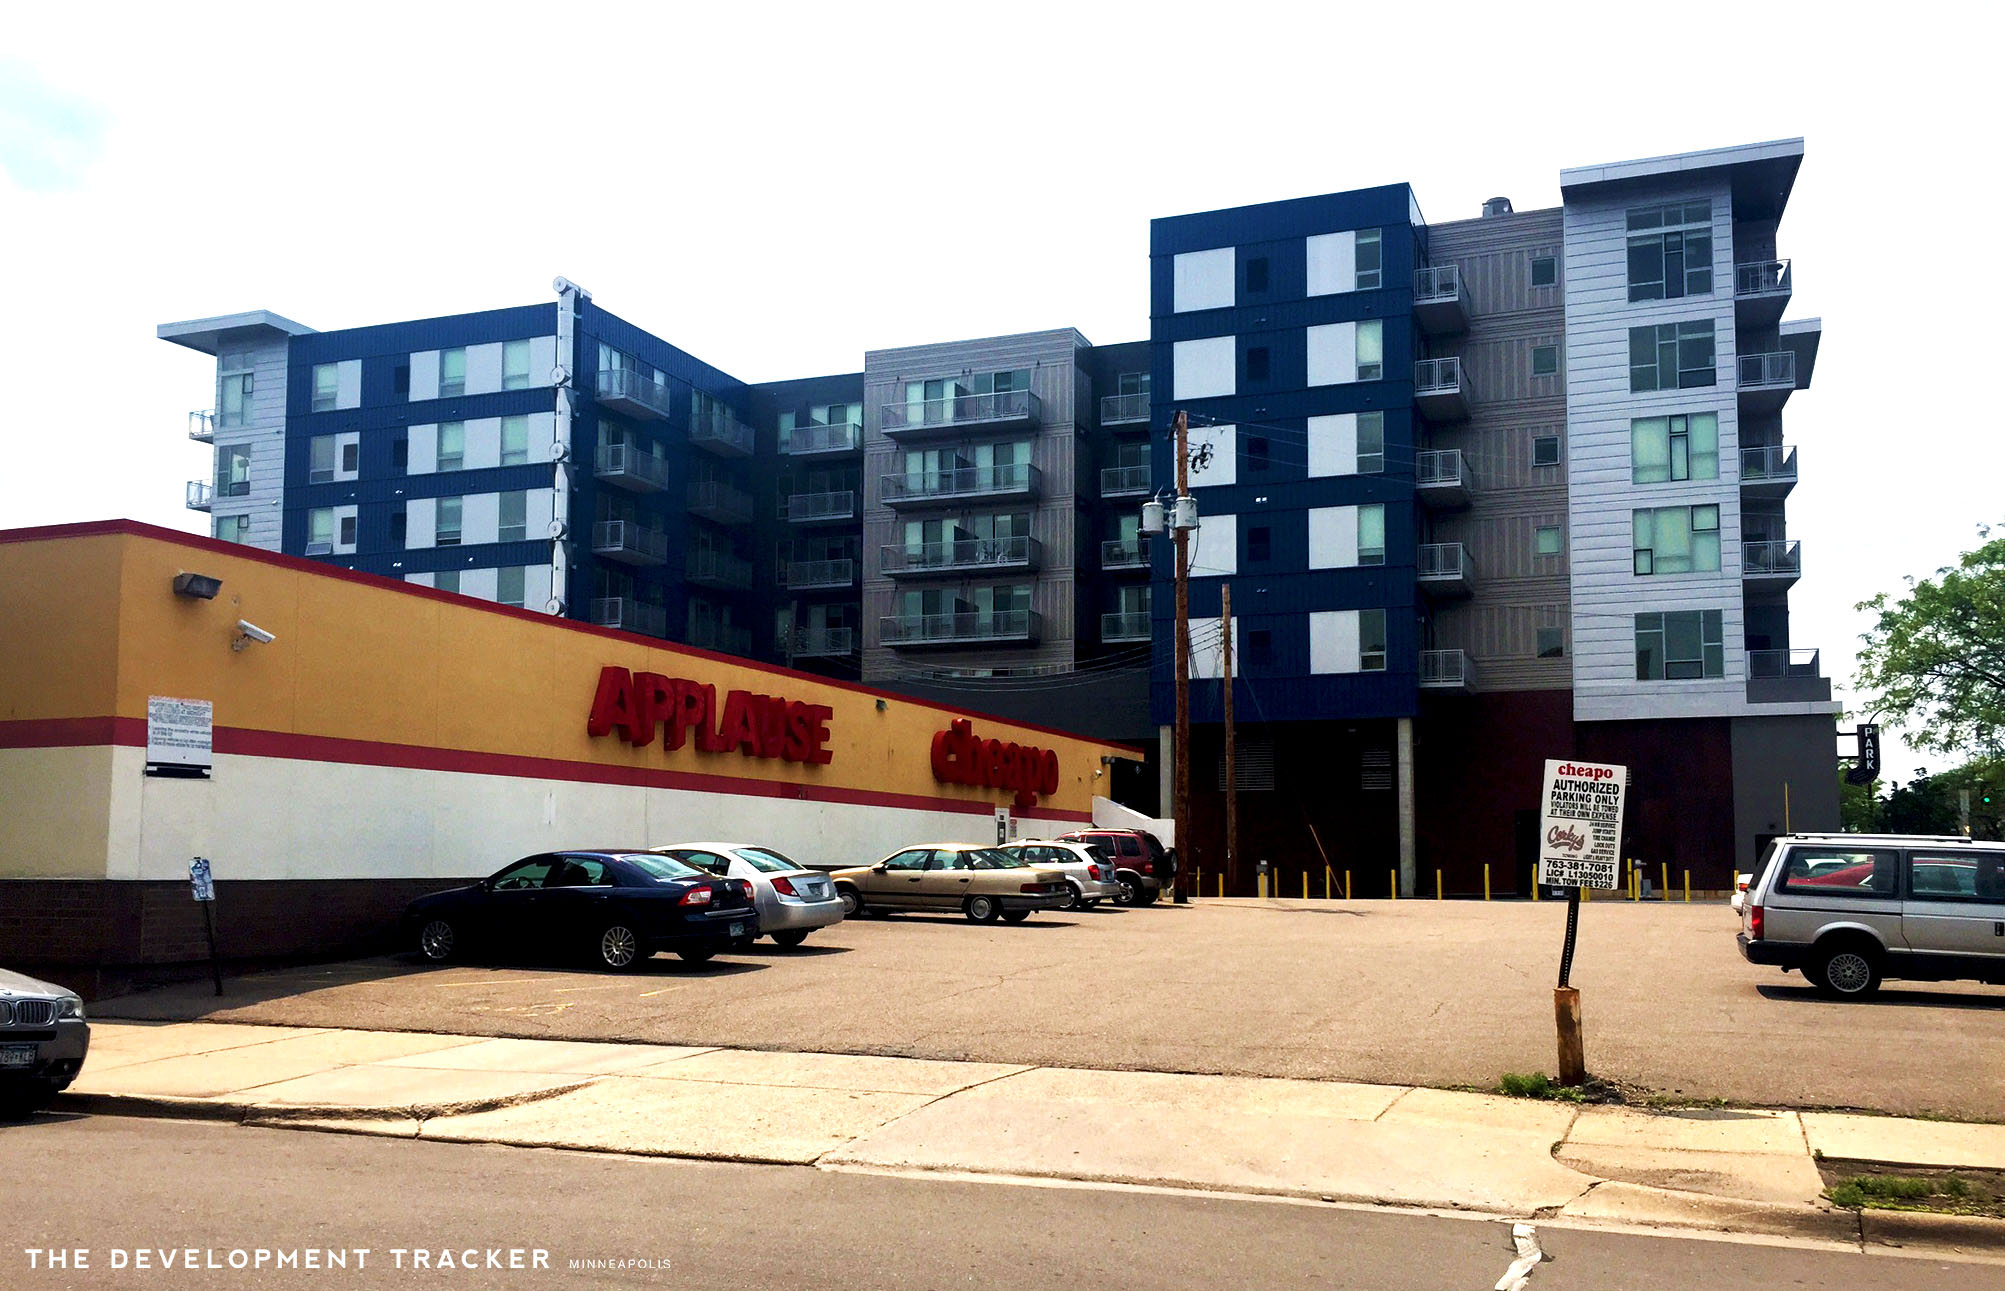 Above: Cheapo's Uptown location.The Walkway luxury apartments are located directly behind the site.